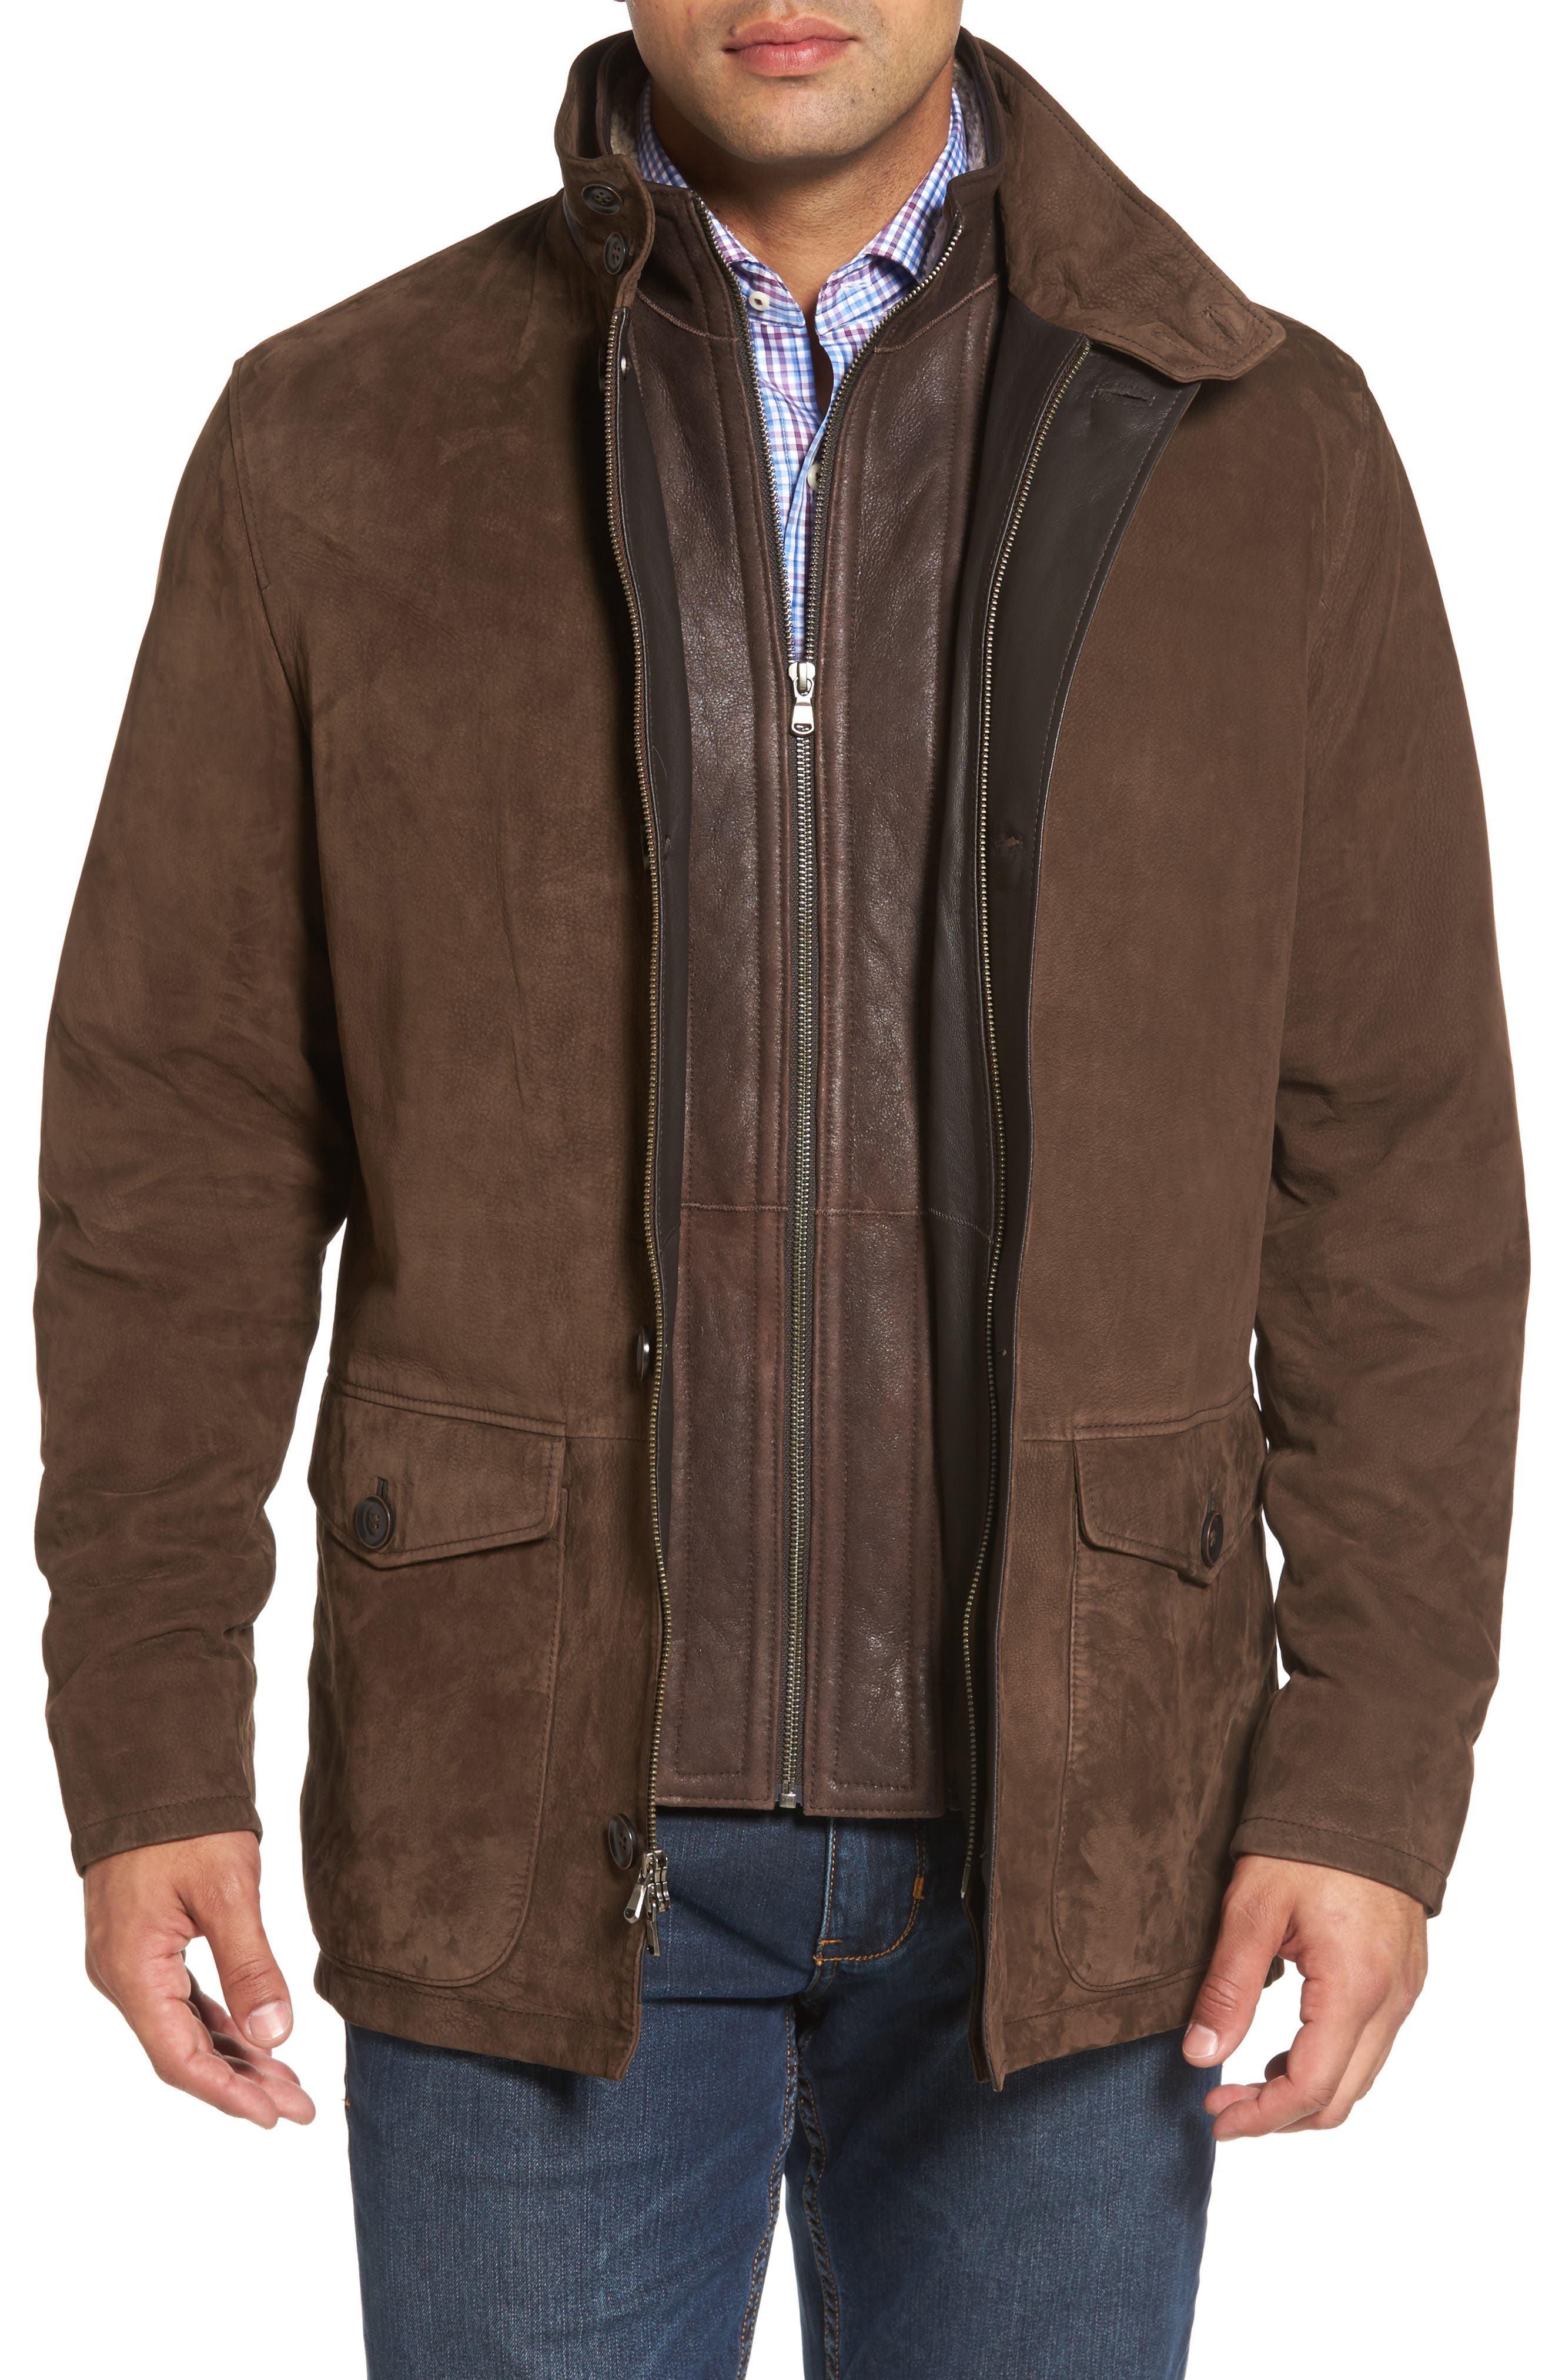 Steamboat Leather Jacket with Genuine Shearling Lined Bib,                         Main,                         color, Branch